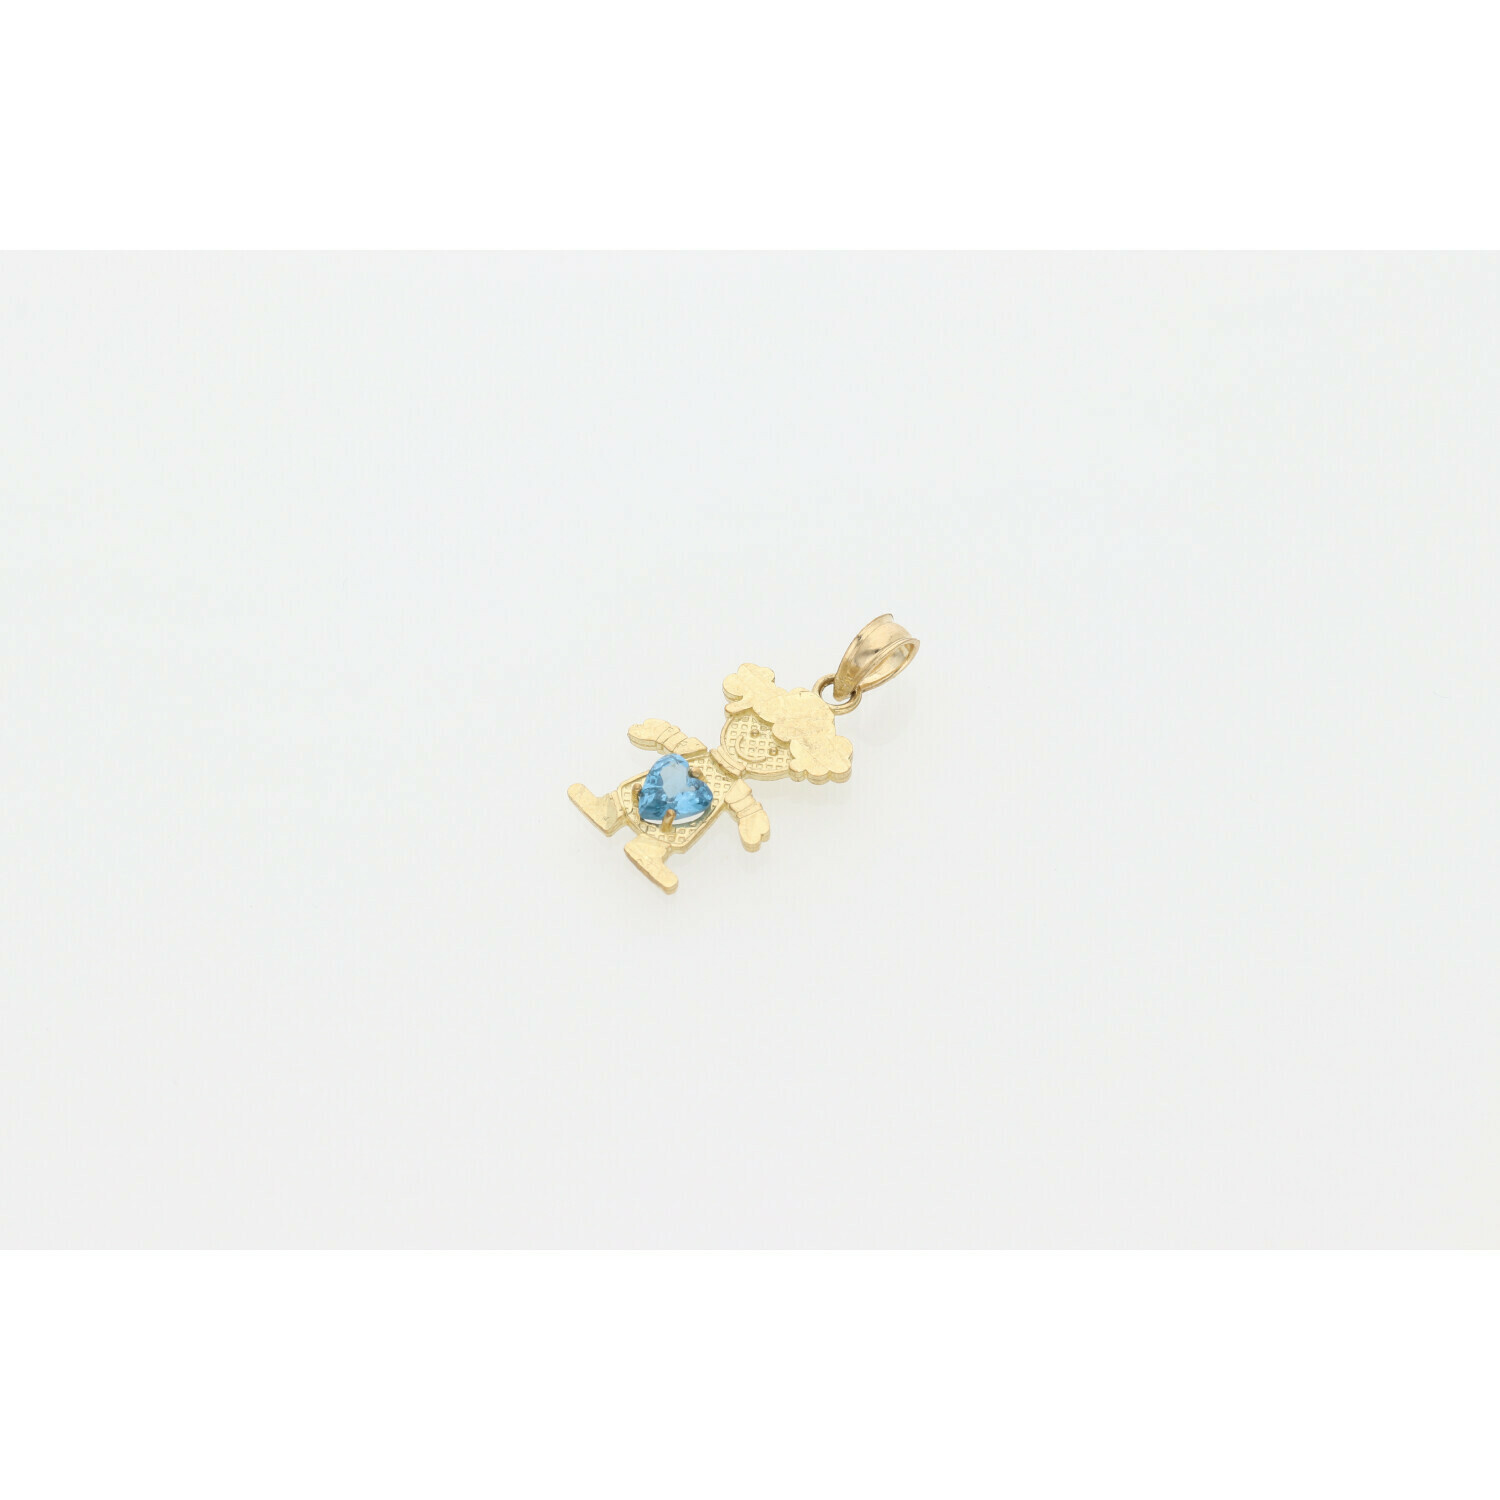 10 karat Gold & Cz Light Blue Children Shape Charm  W: 1.0g ~